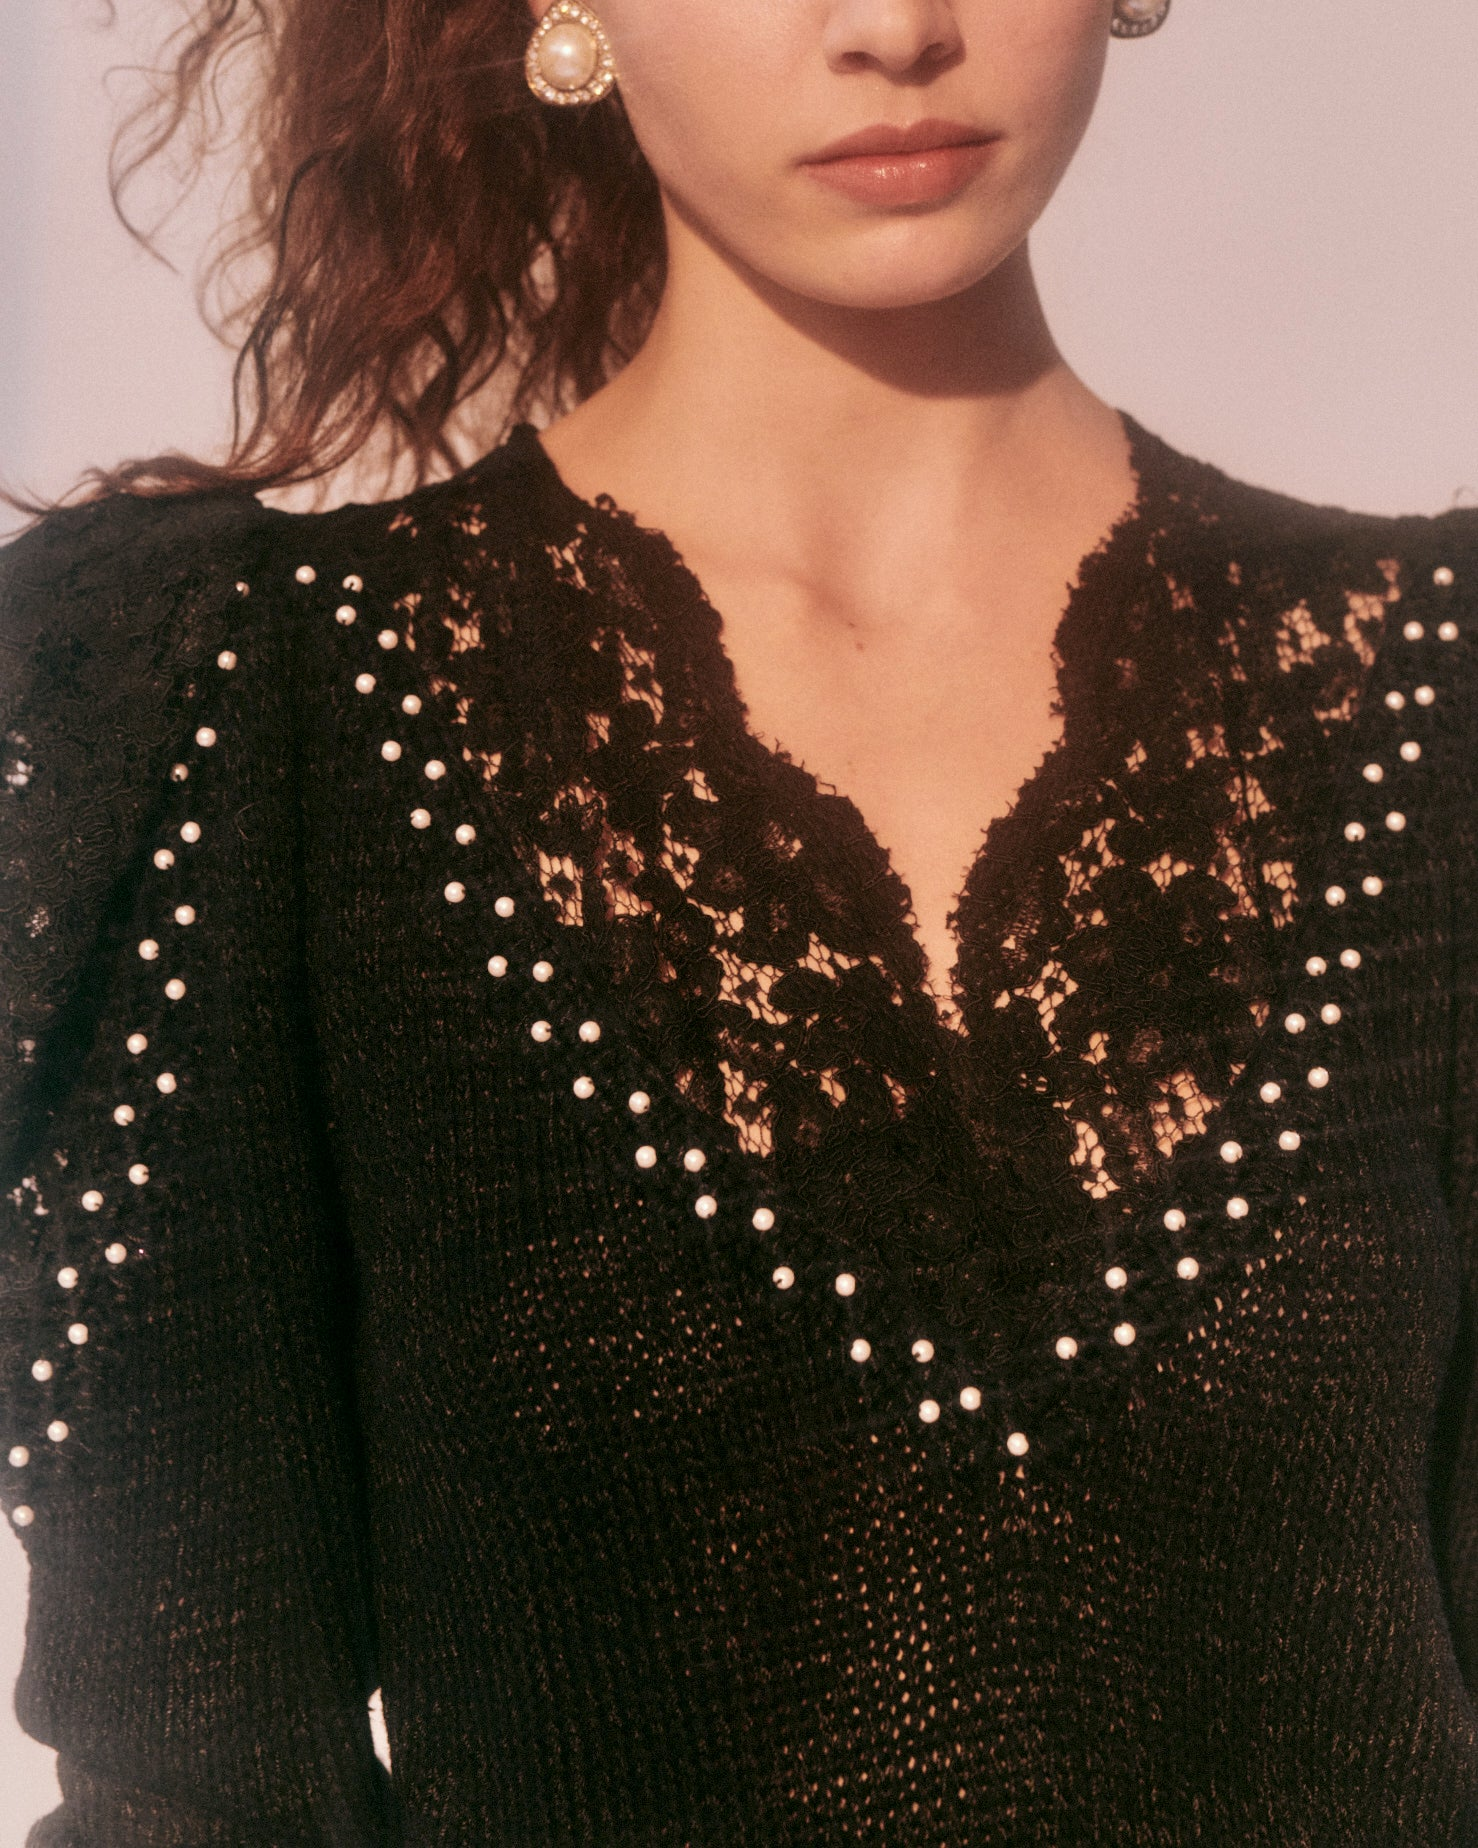 I drove all night // embellished lace sweater